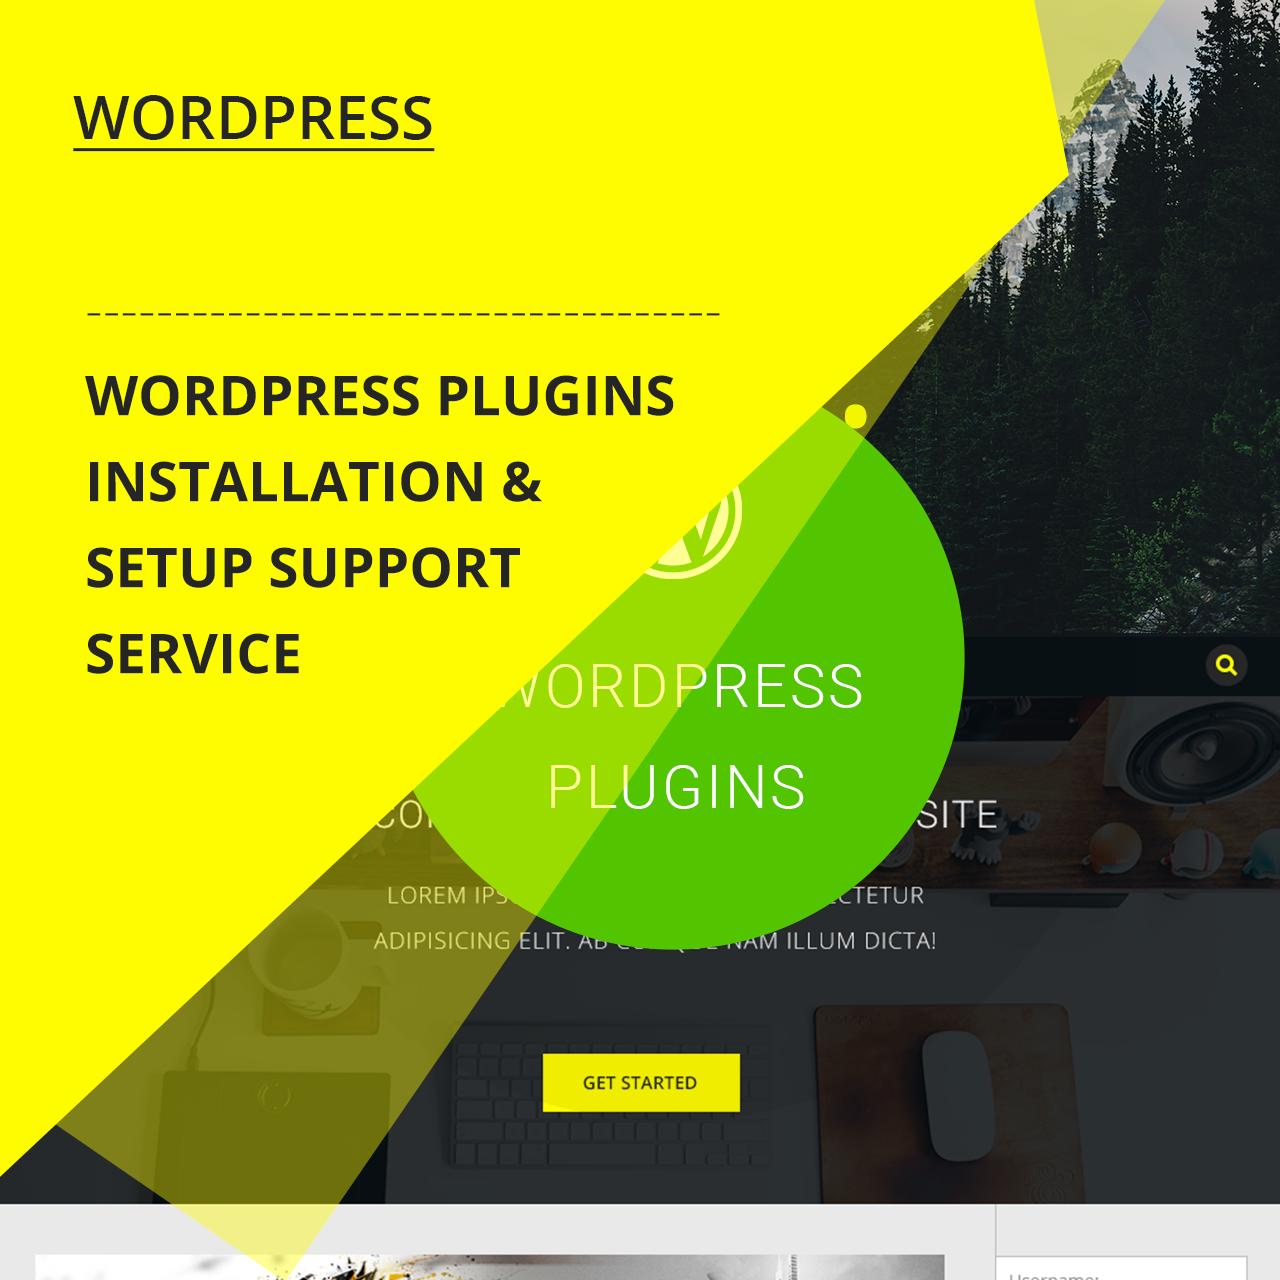 Wordpress Plugins Installation & Setup Support Service by zendcrew - 108511